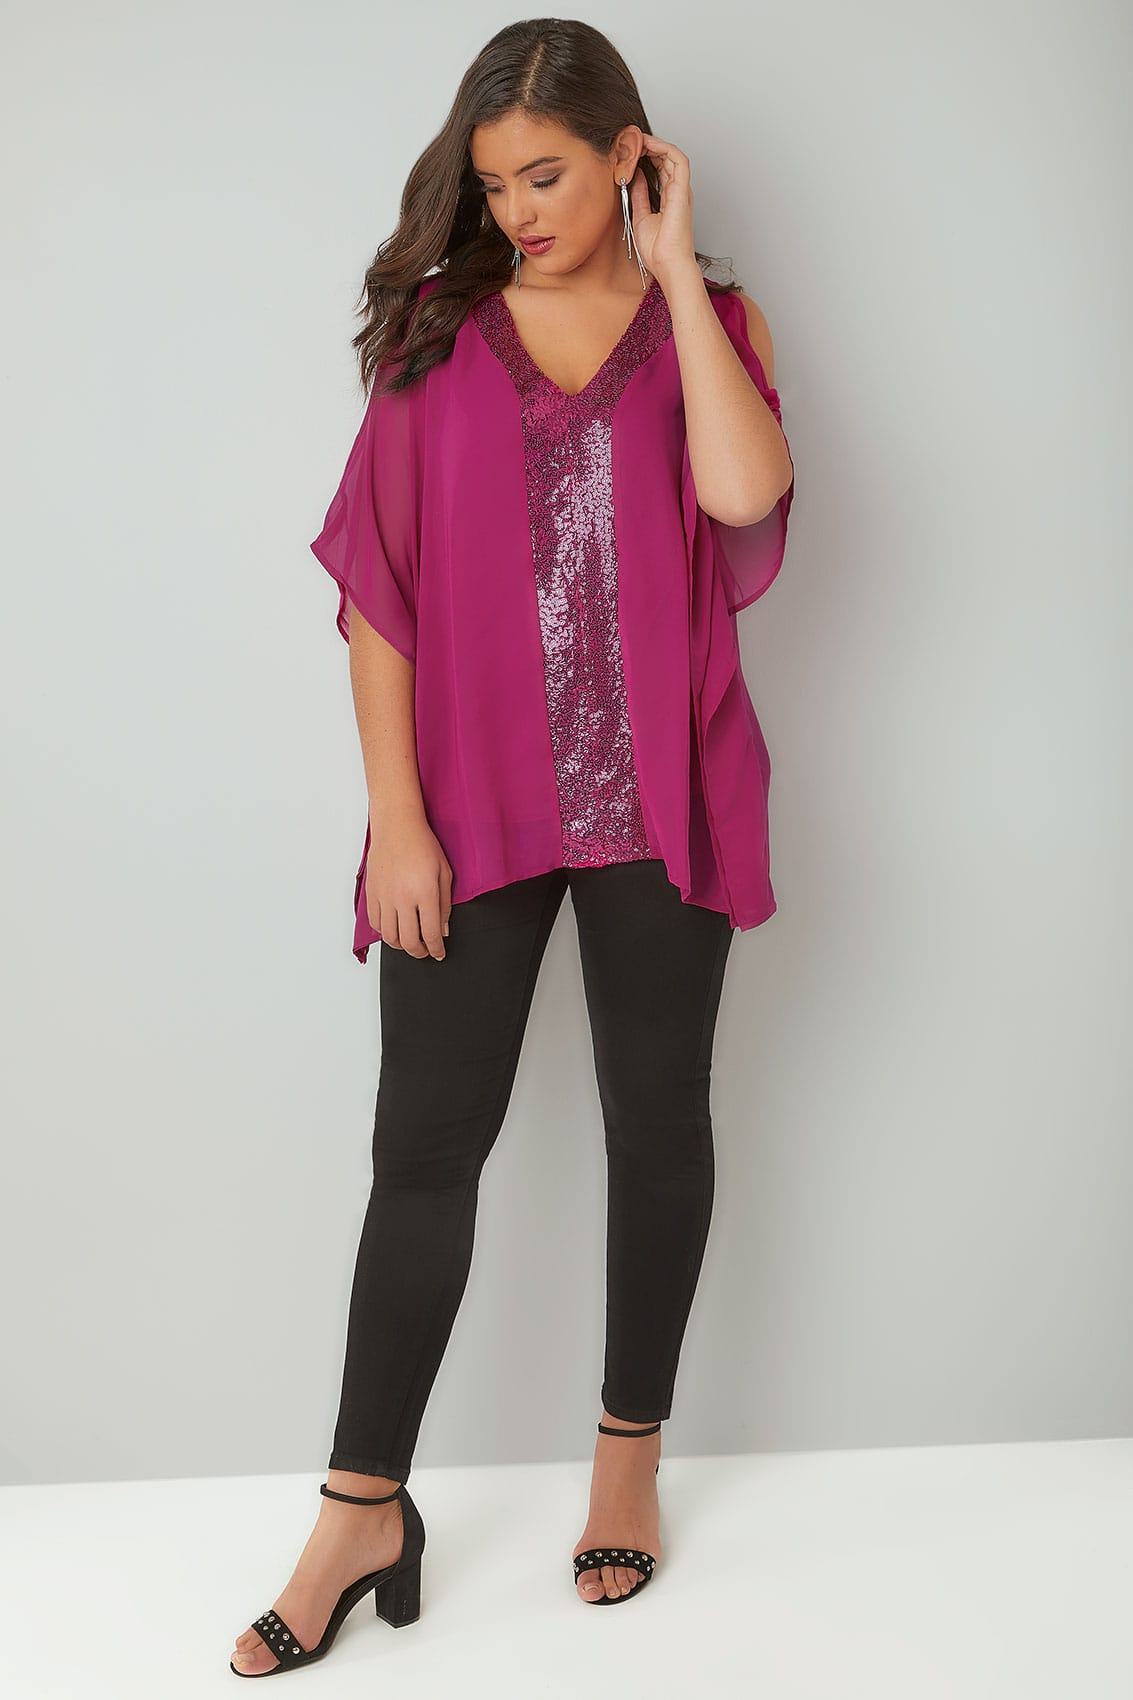 adb9be92c7e3dd YOURS LONDON Fuchsia Pink Sequin V-Neck Blouse With Cold Shoulders